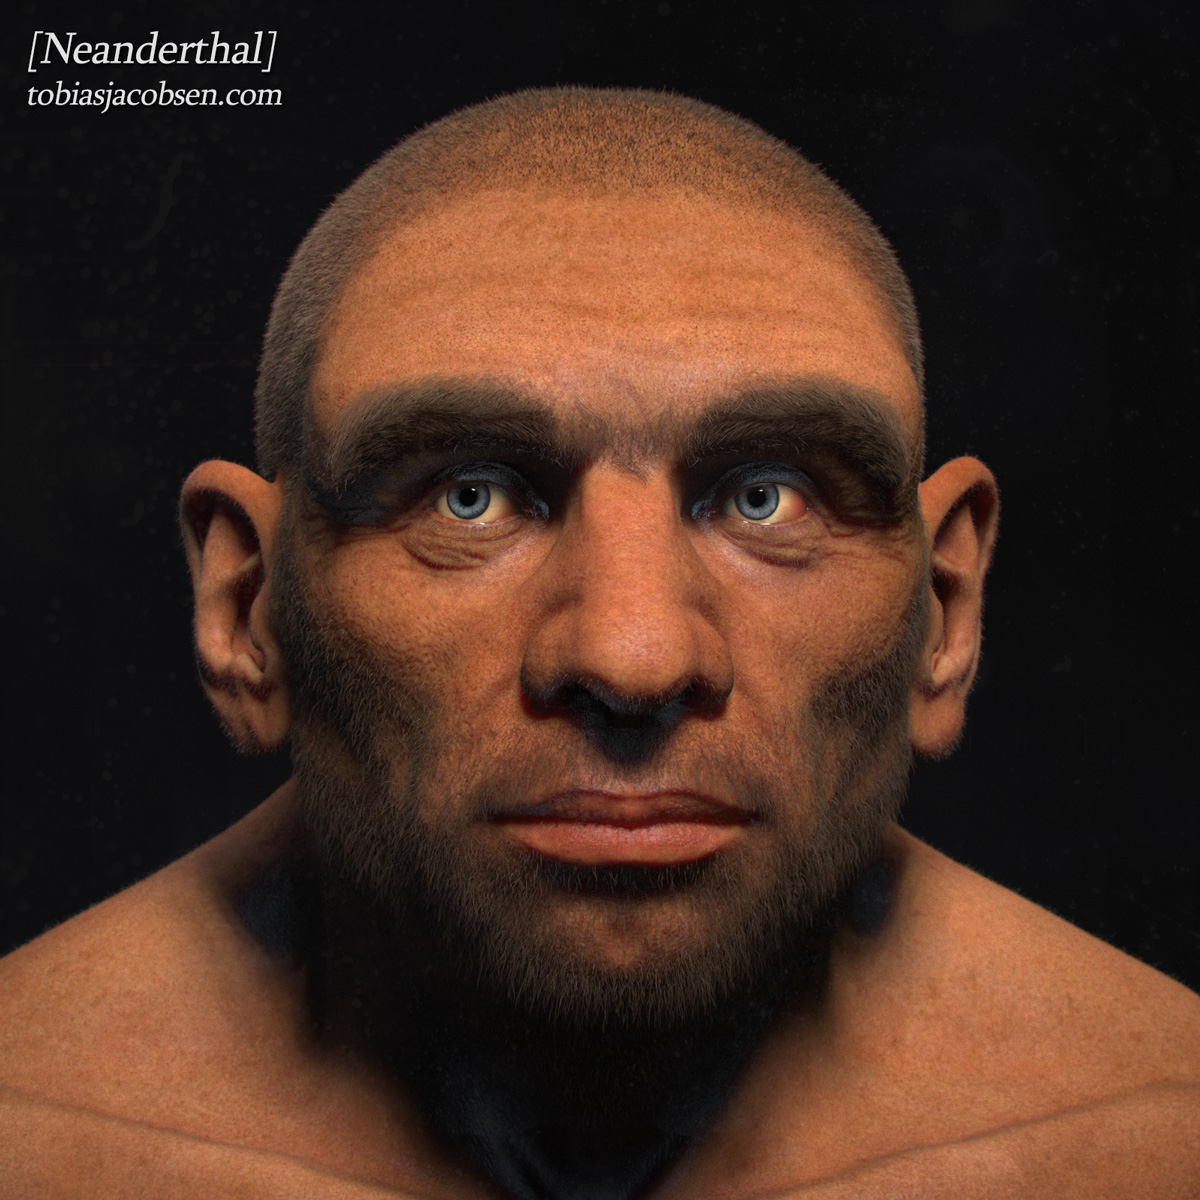 New (to me) Neanderthal Reconstruction   Asperger: The HypoSocial ...